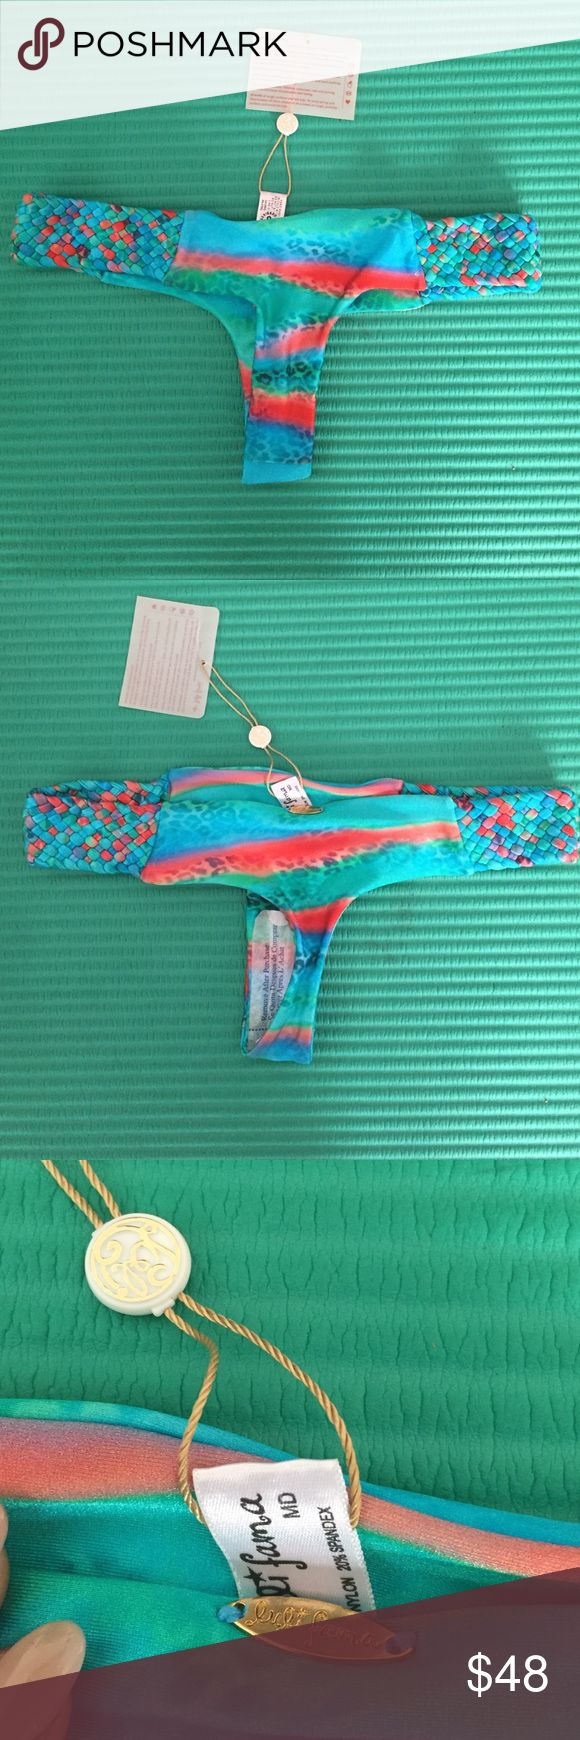 ✨NWT✨Luli Fama Thong Bikini Bottoms size M Luli Fama bikini bottoms size M are brand new with tags. Comes from a pet and smoke free environment . Luli Fama Swim One Pieces